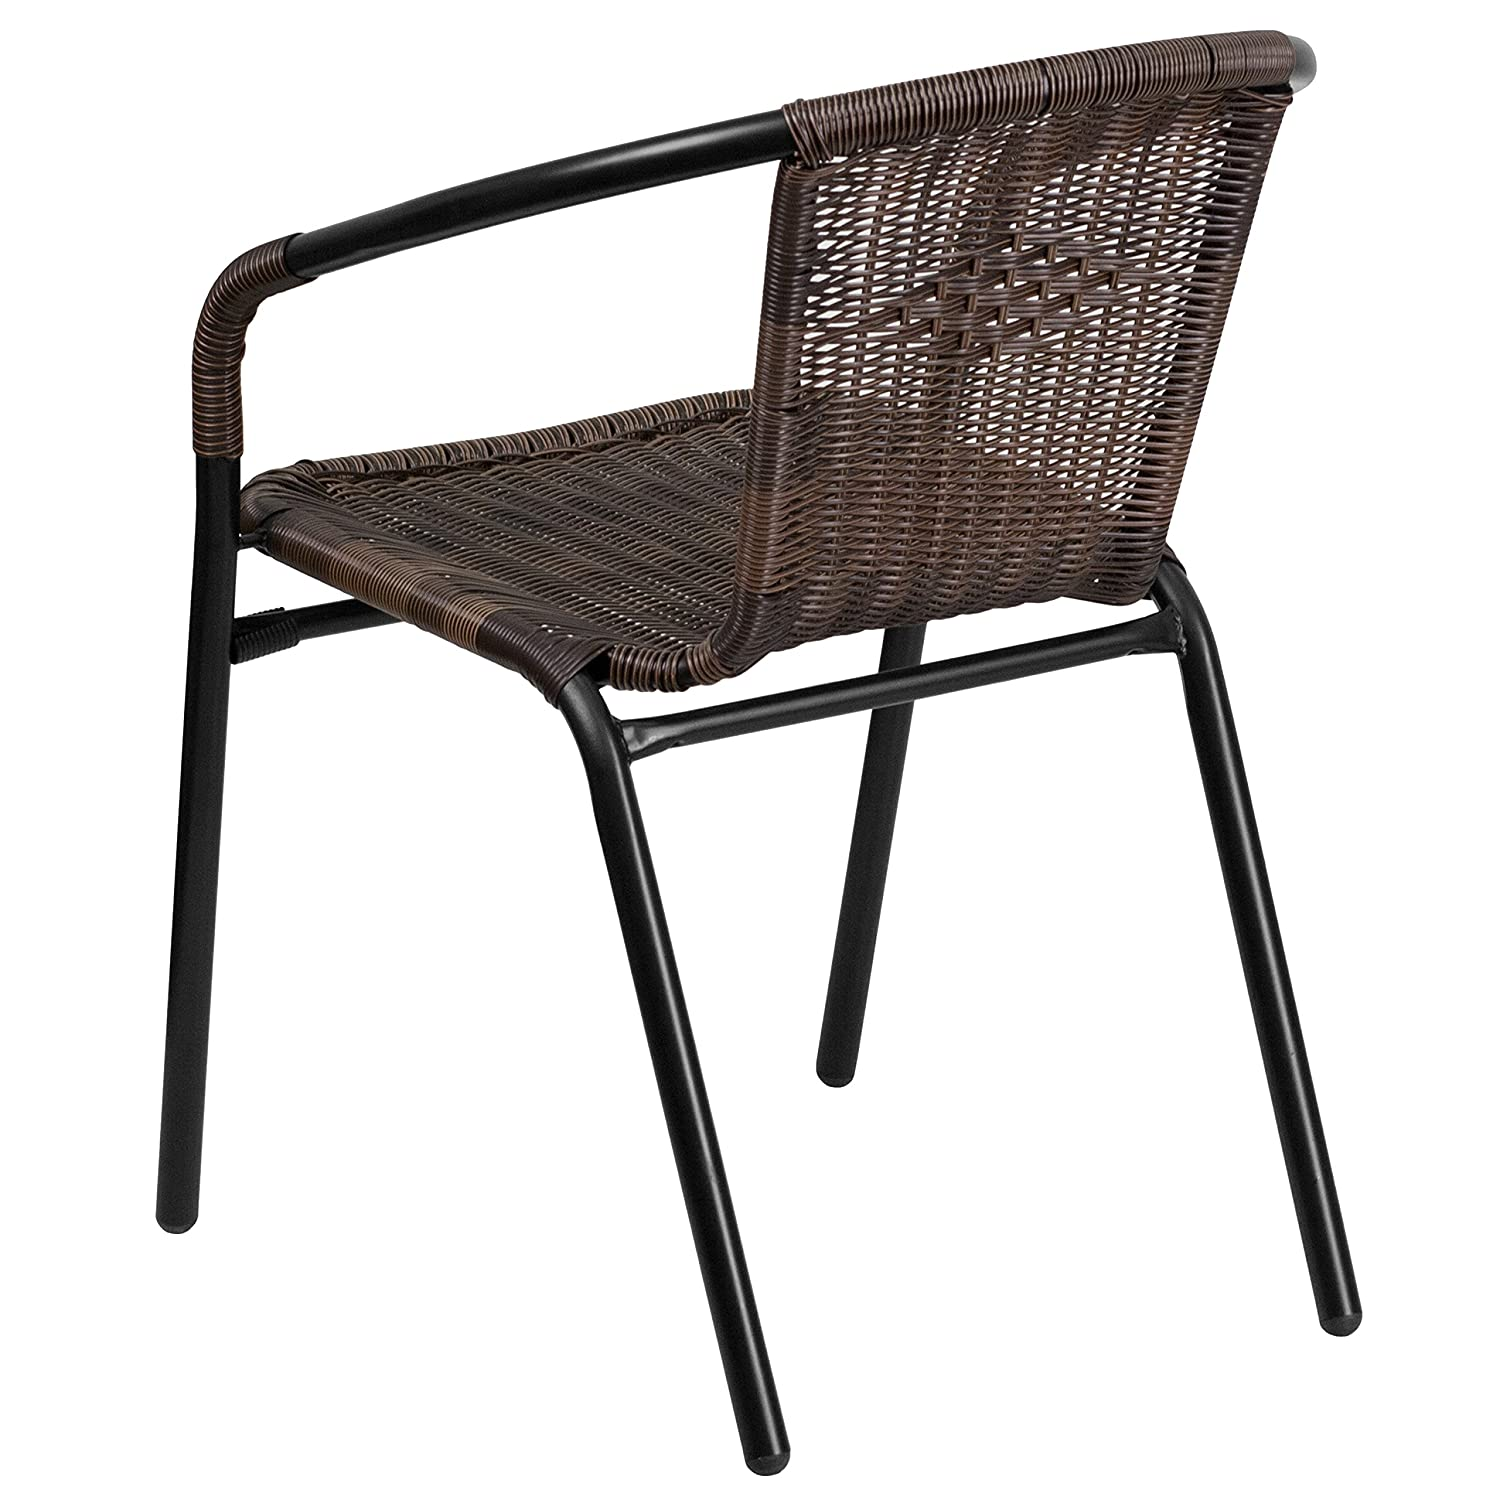 outdoor metal chair. Amazon.com: Flash Furniture Dark Brown Rattan Indoor-Outdoor Restaurant Stack Chair: Kitchen \u0026 Dining Outdoor Metal Chair